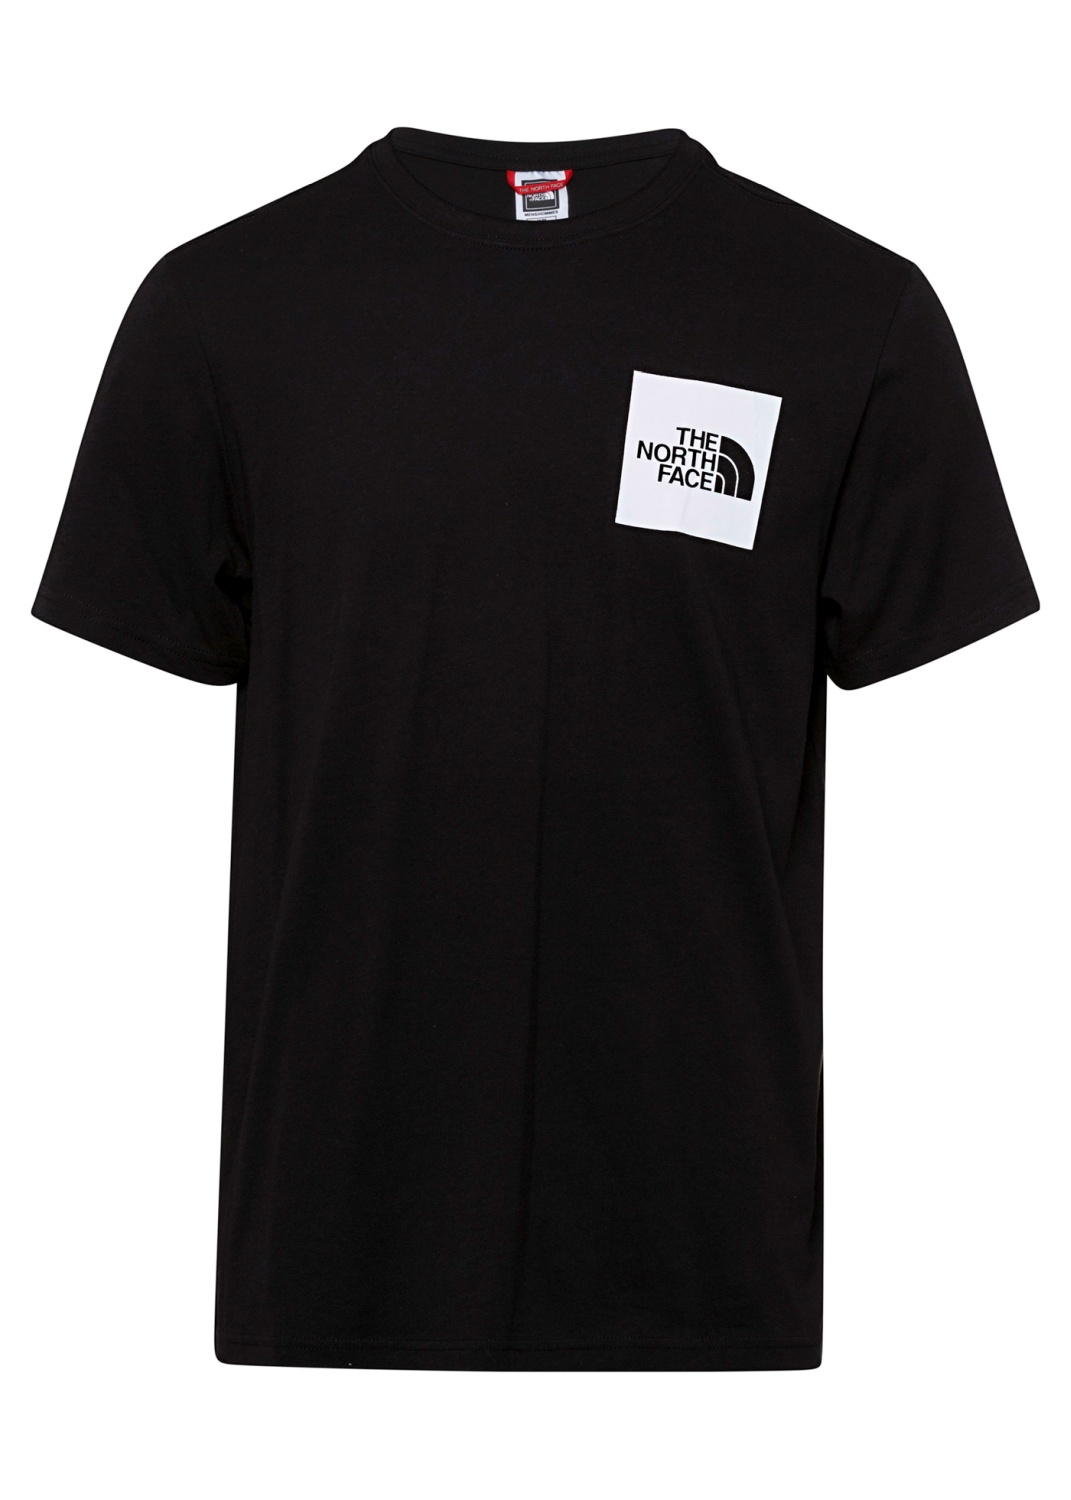 M S/S FINE TEE TNF BLACK image number 0